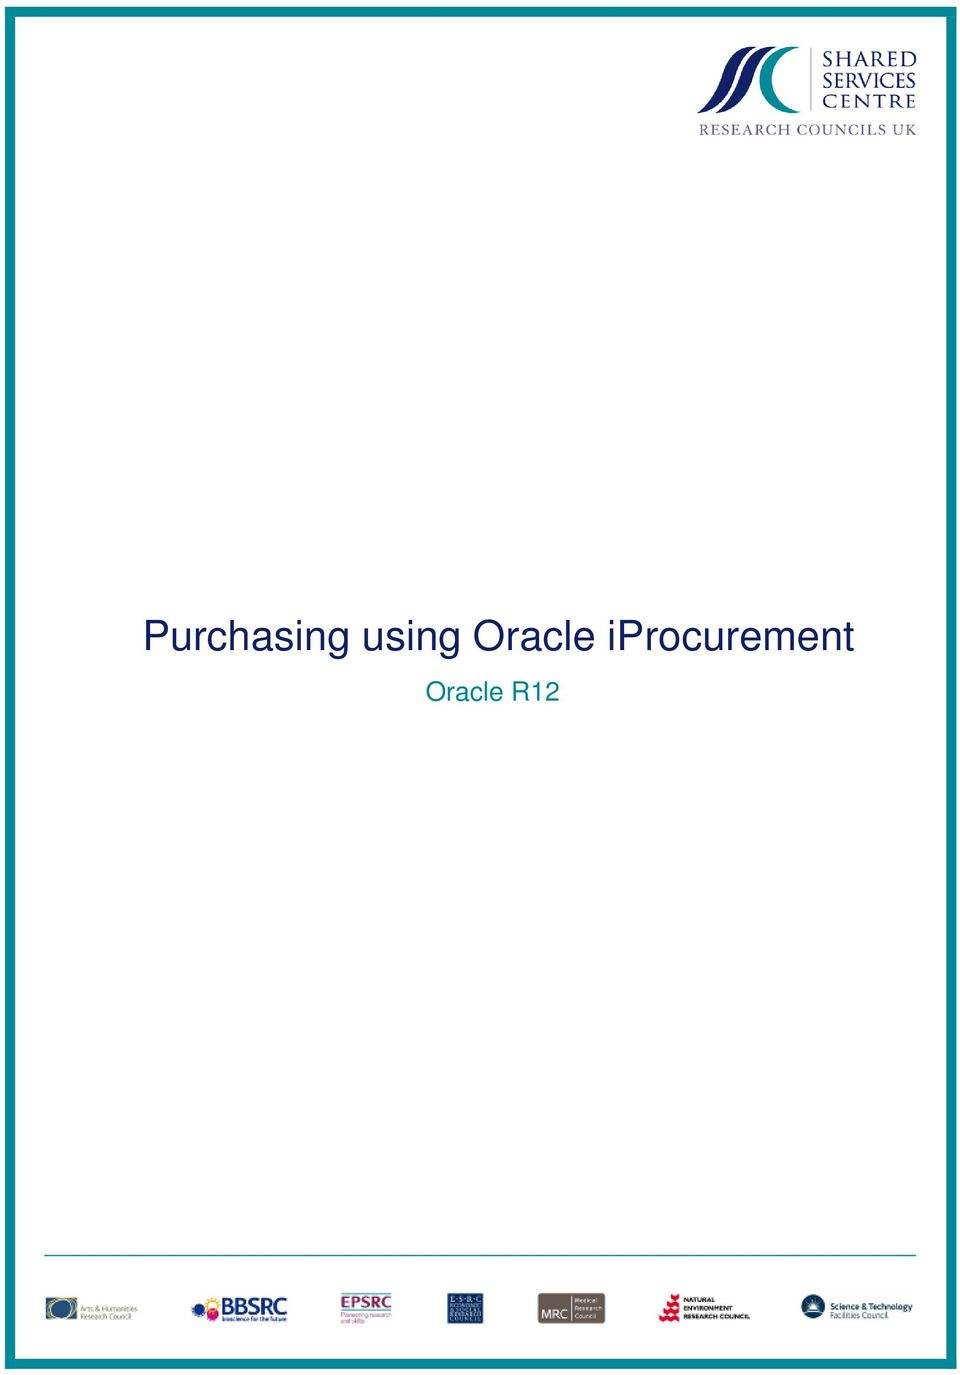 Purchasing using Oracle iprocurement  Oracle R12 - PDF